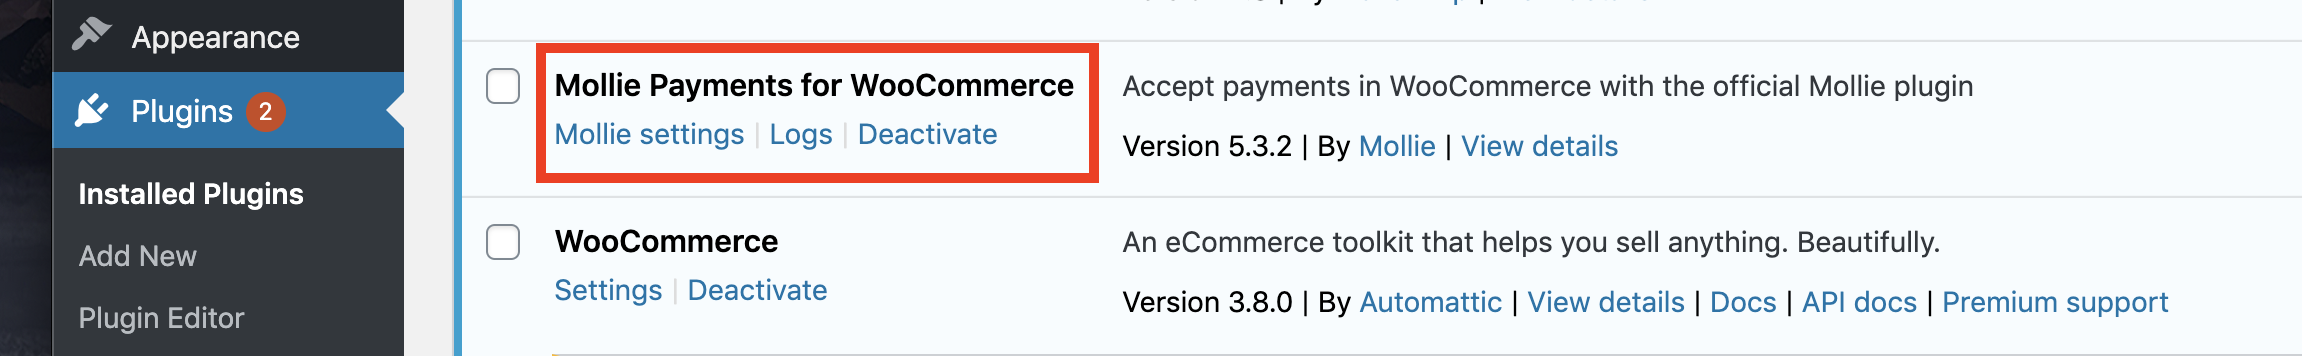 WooCommerce_Mollie_Components_step_1.png